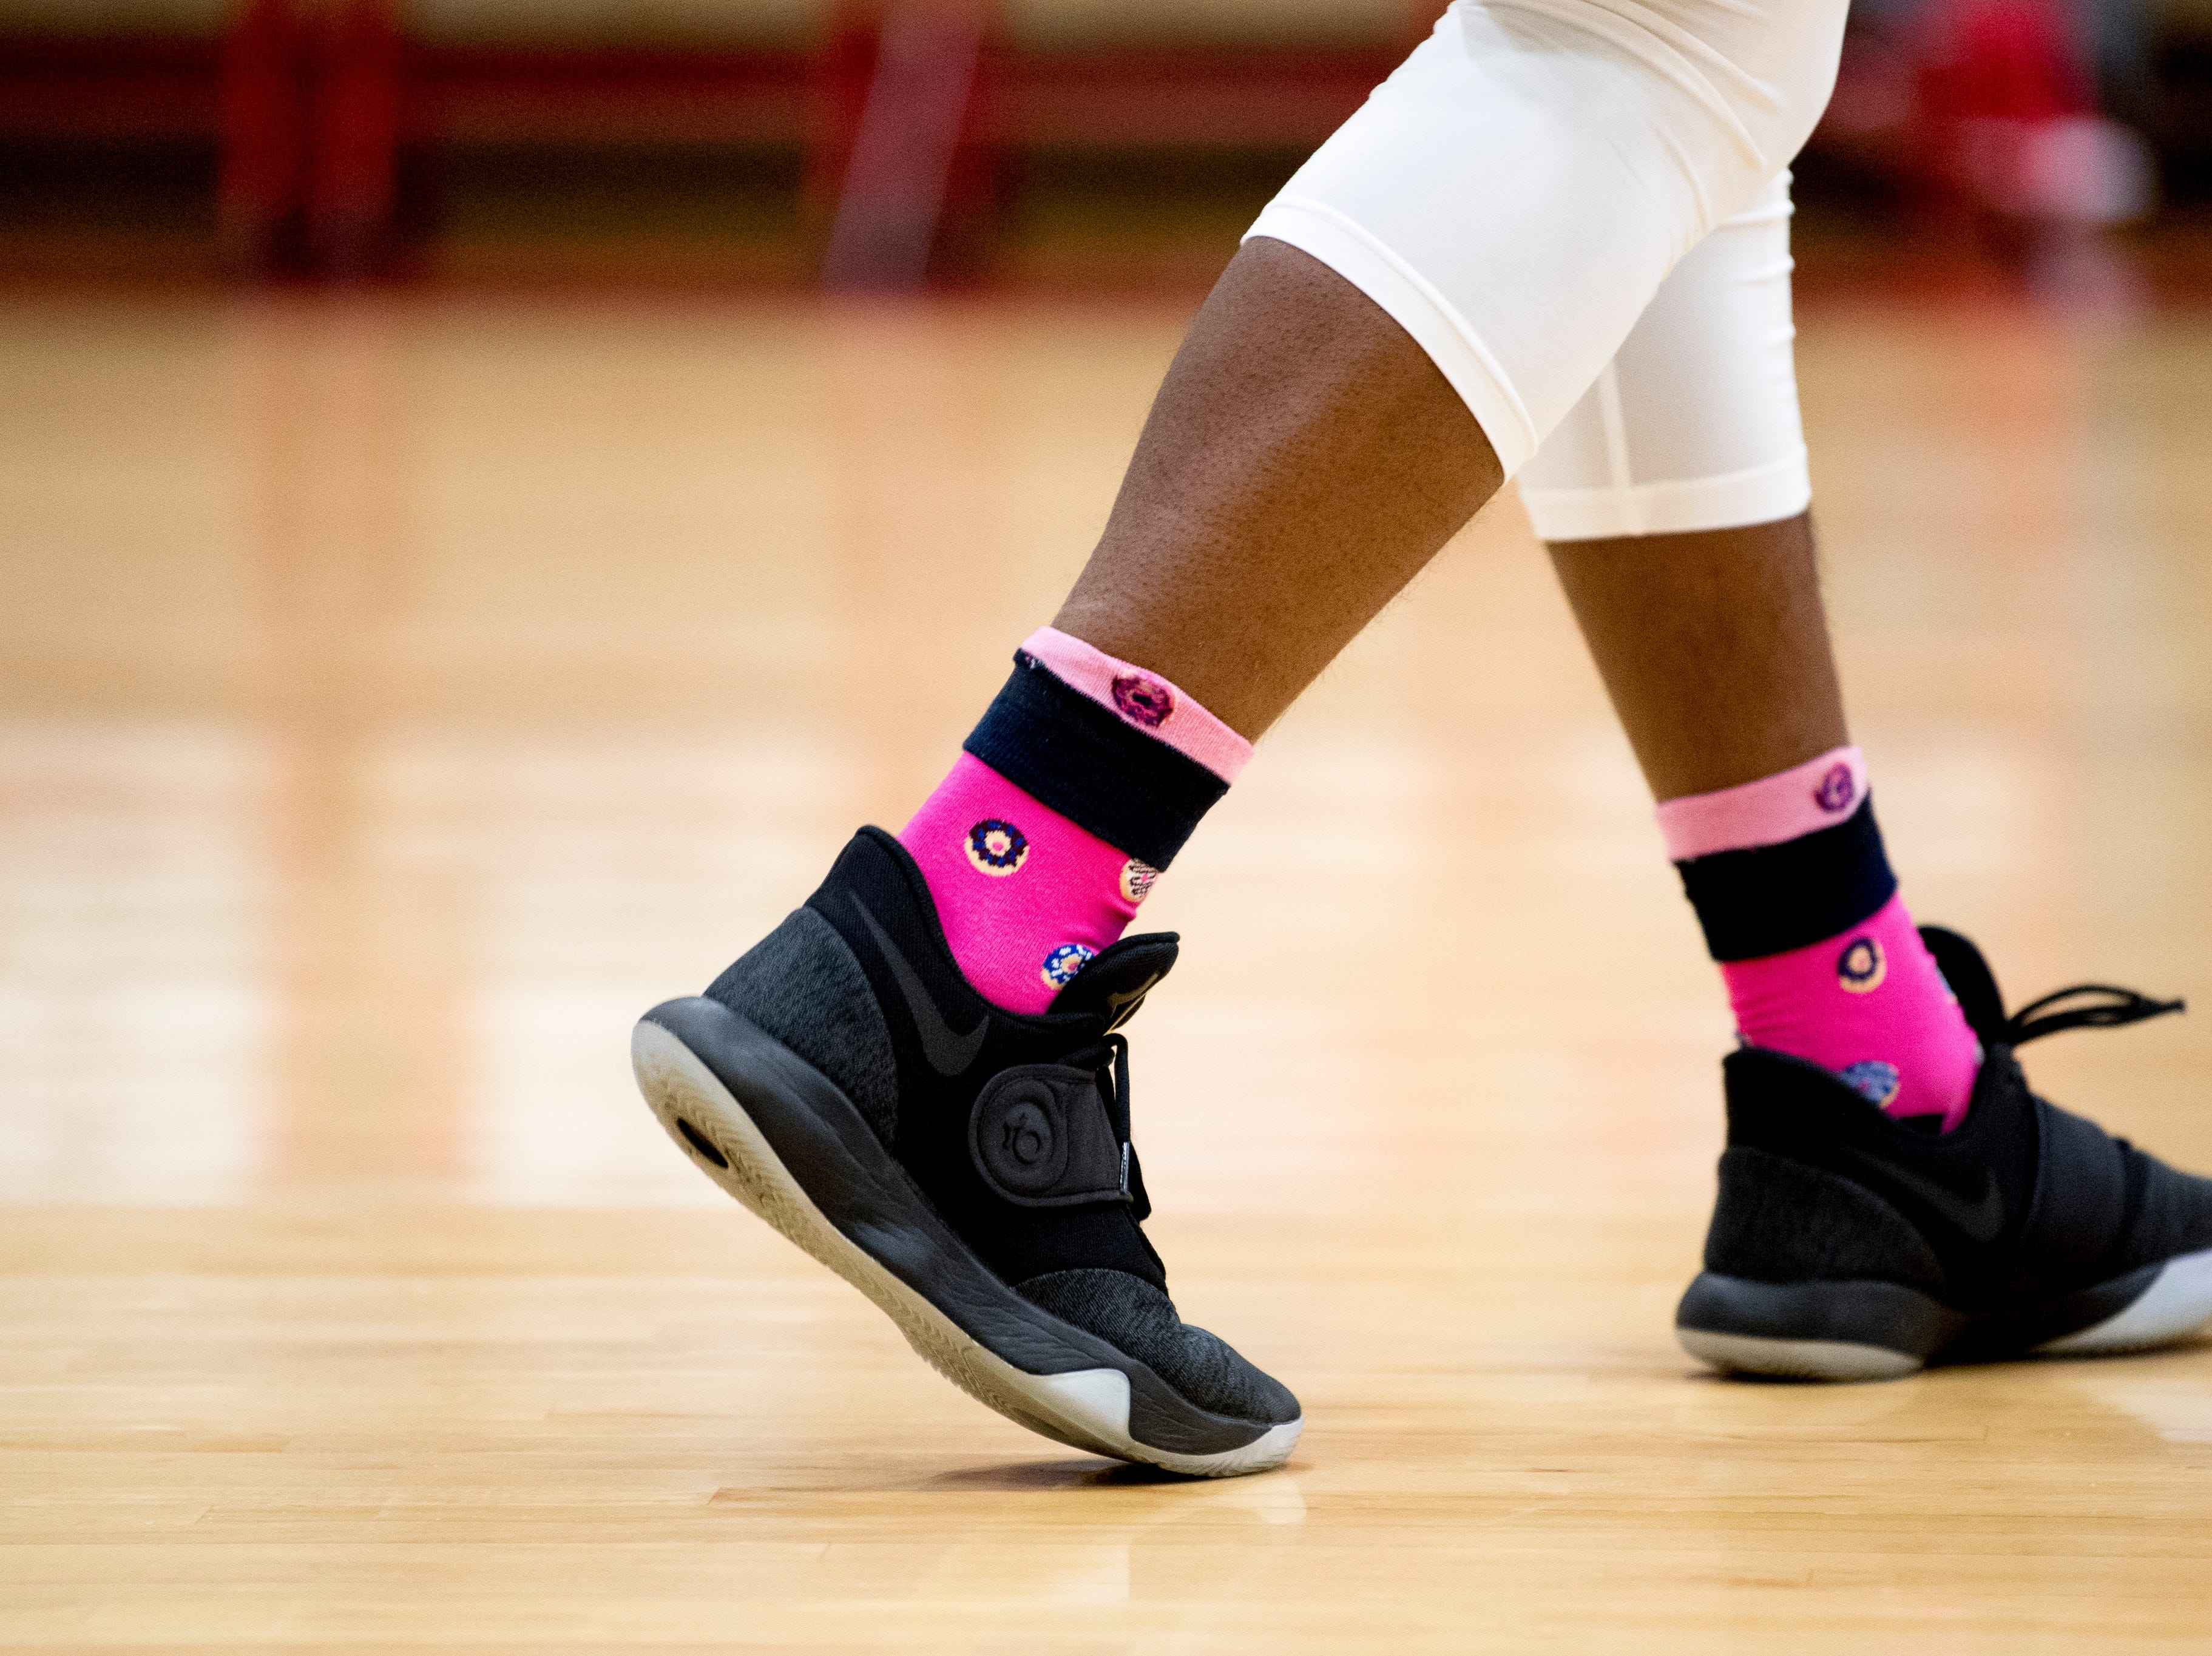 An Austin-East player wears donut printed socks during a game between Austin-East and Alcoa at Austin-East High School in Knoxville, Tennessee on Friday, January 18, 2019.